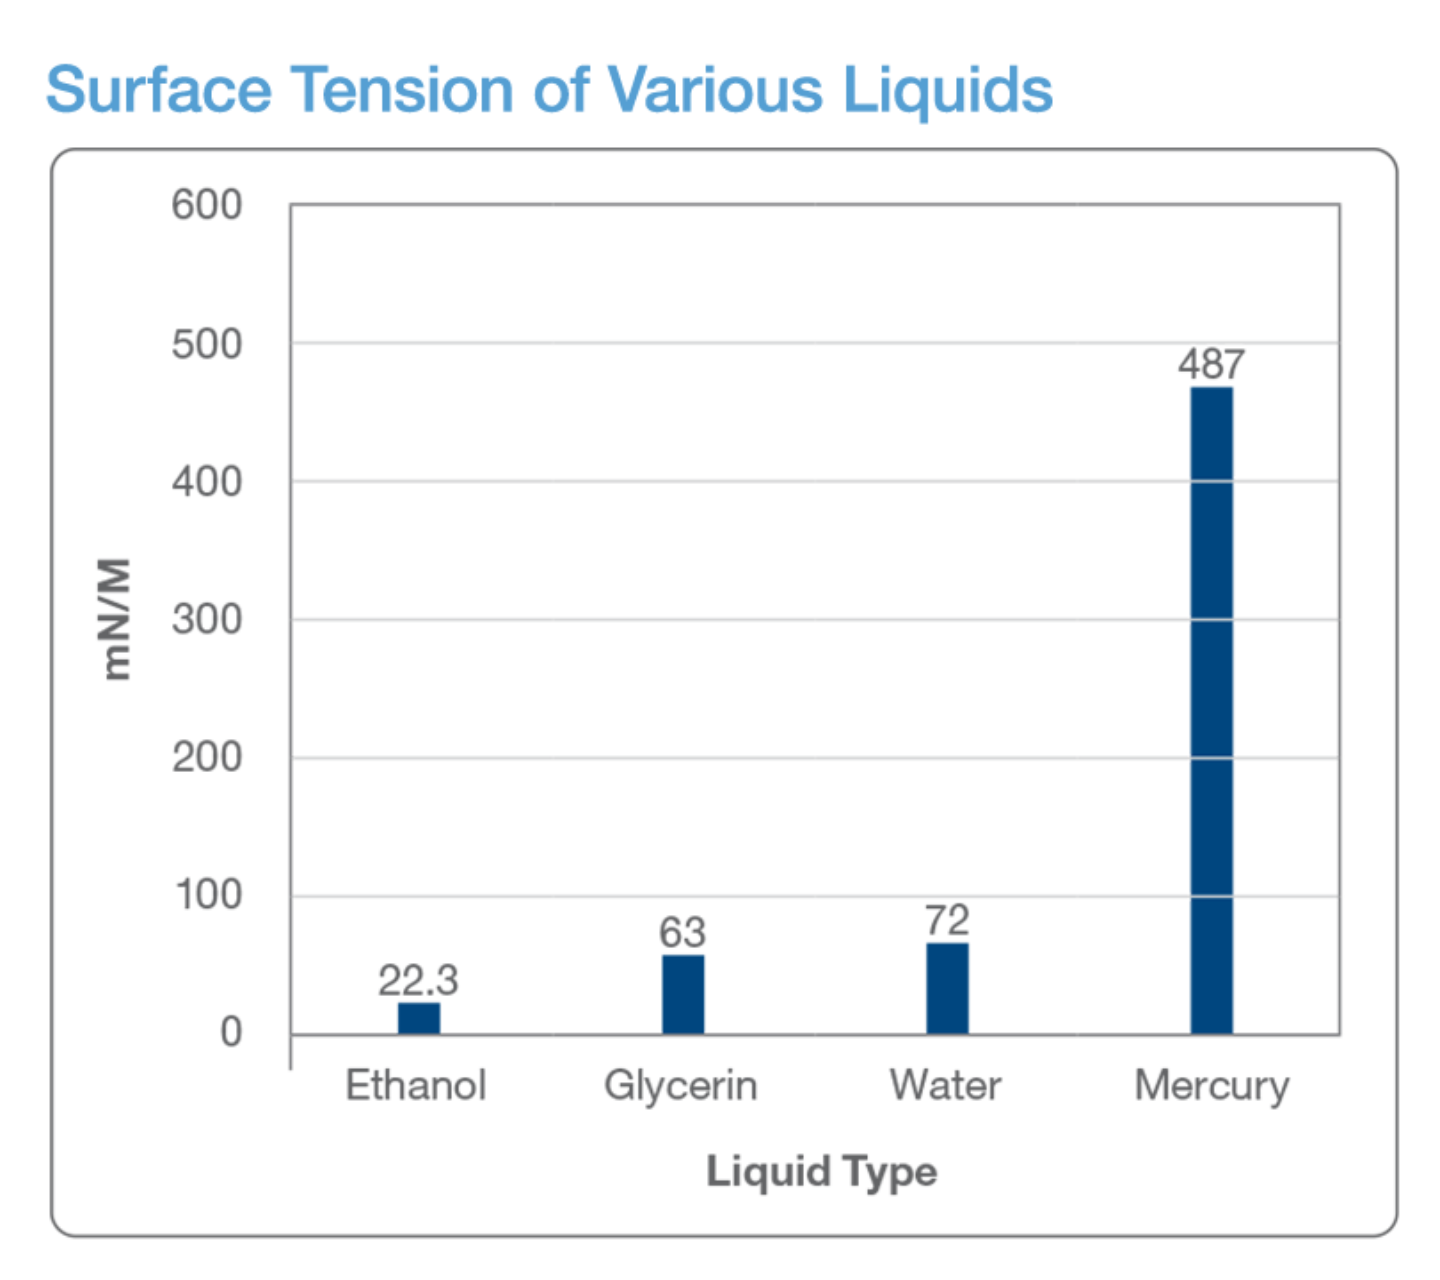 Graph: Surface tension of various liquids